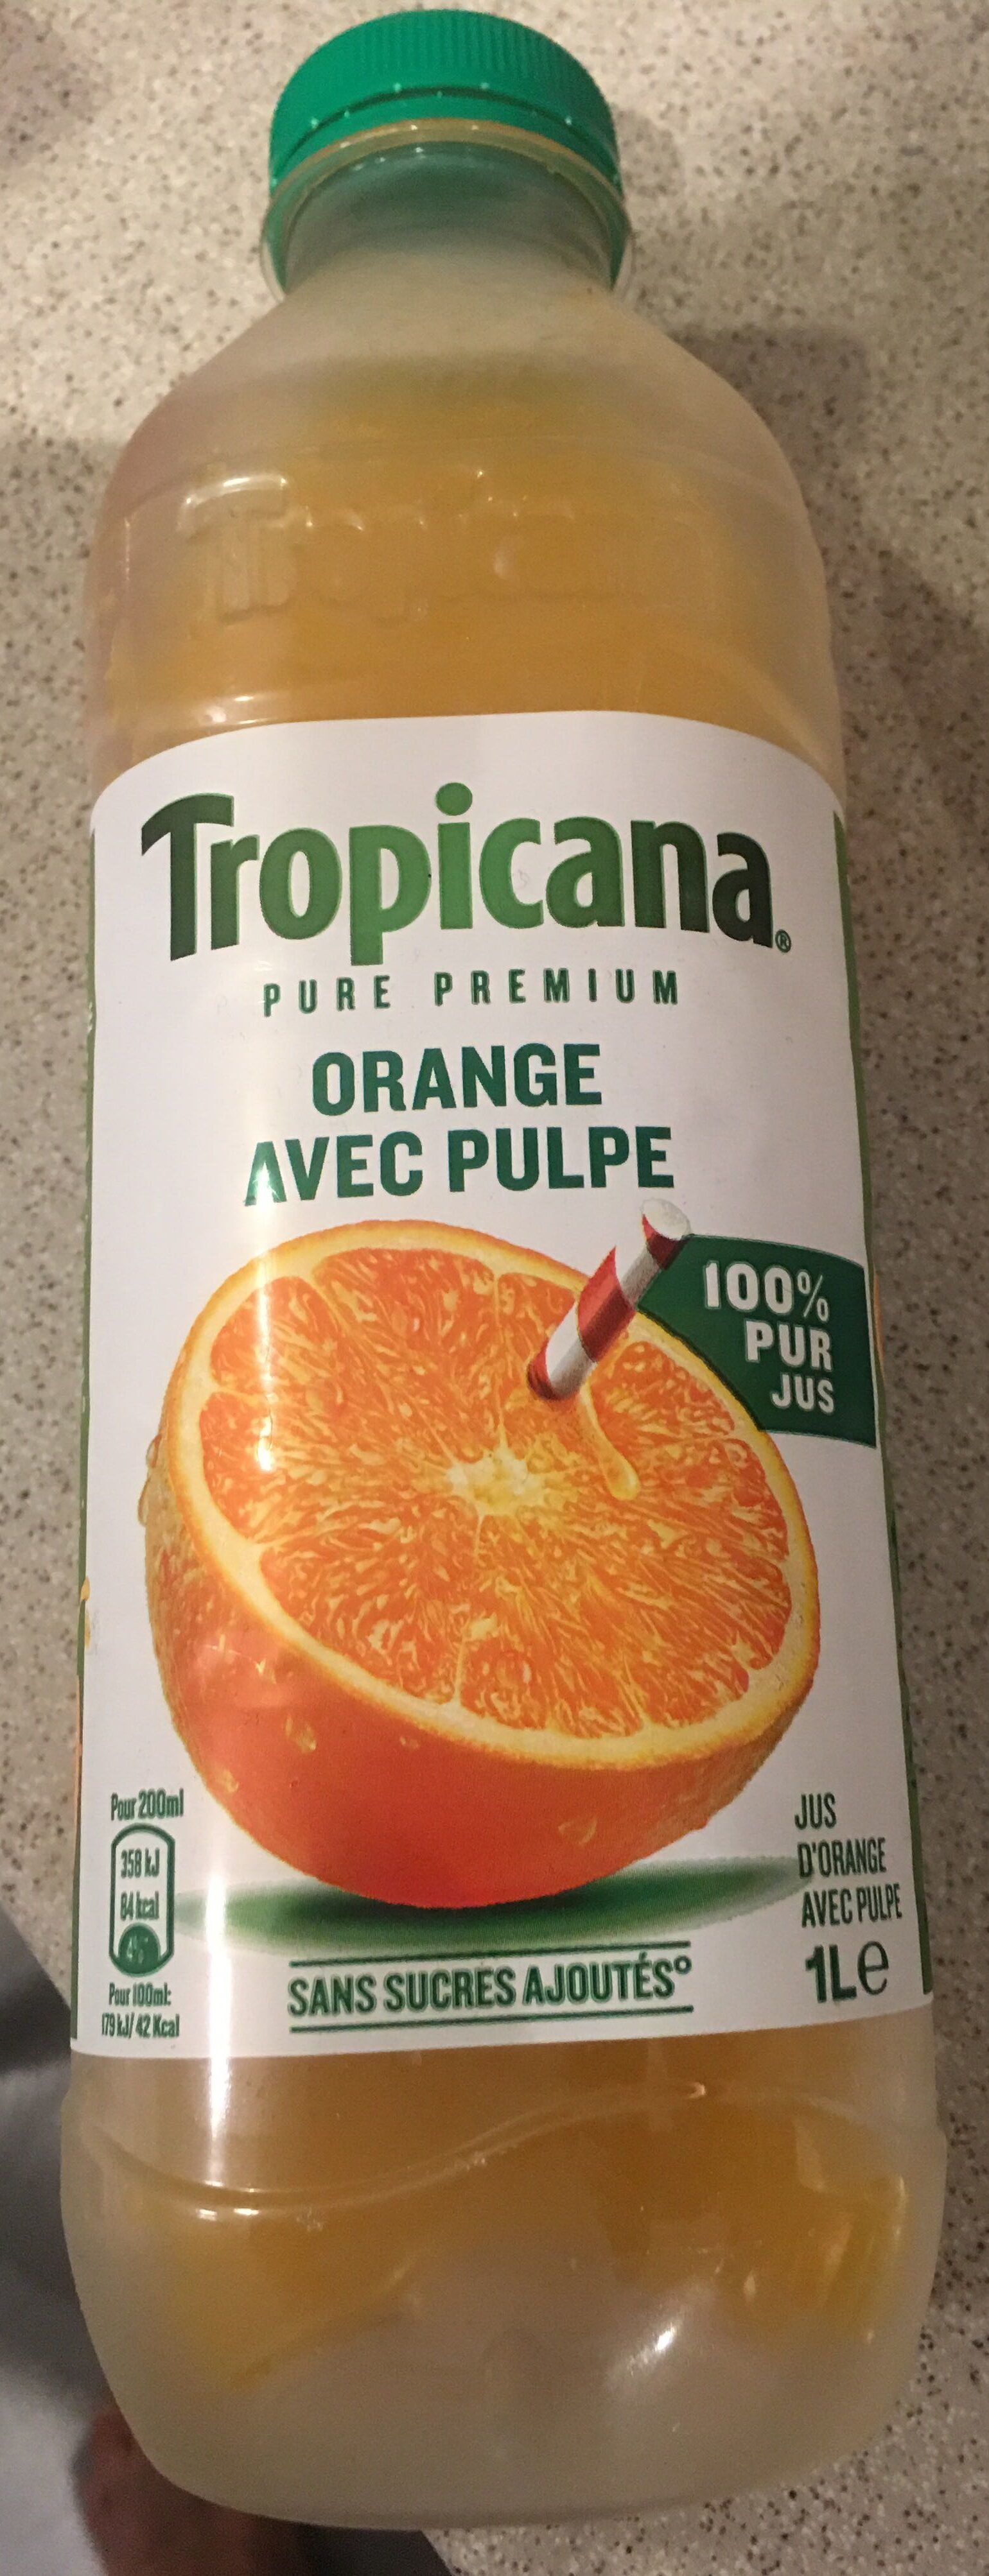 Jus d'orange avec pulpe - Product - fr